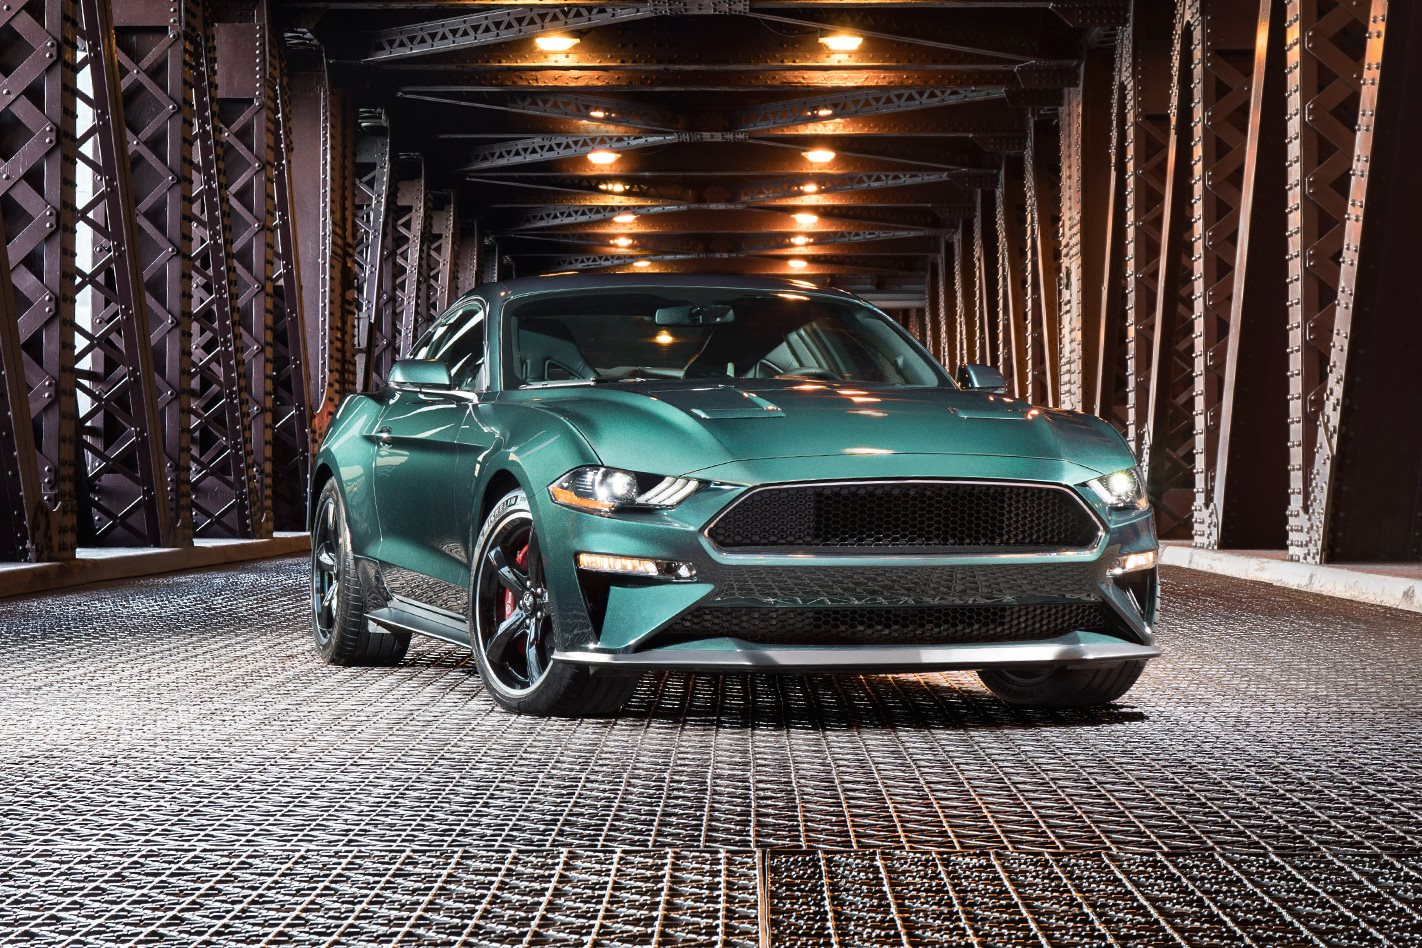 The 2019 Ford Mustang Bullitt Is Ready to Conquer The World